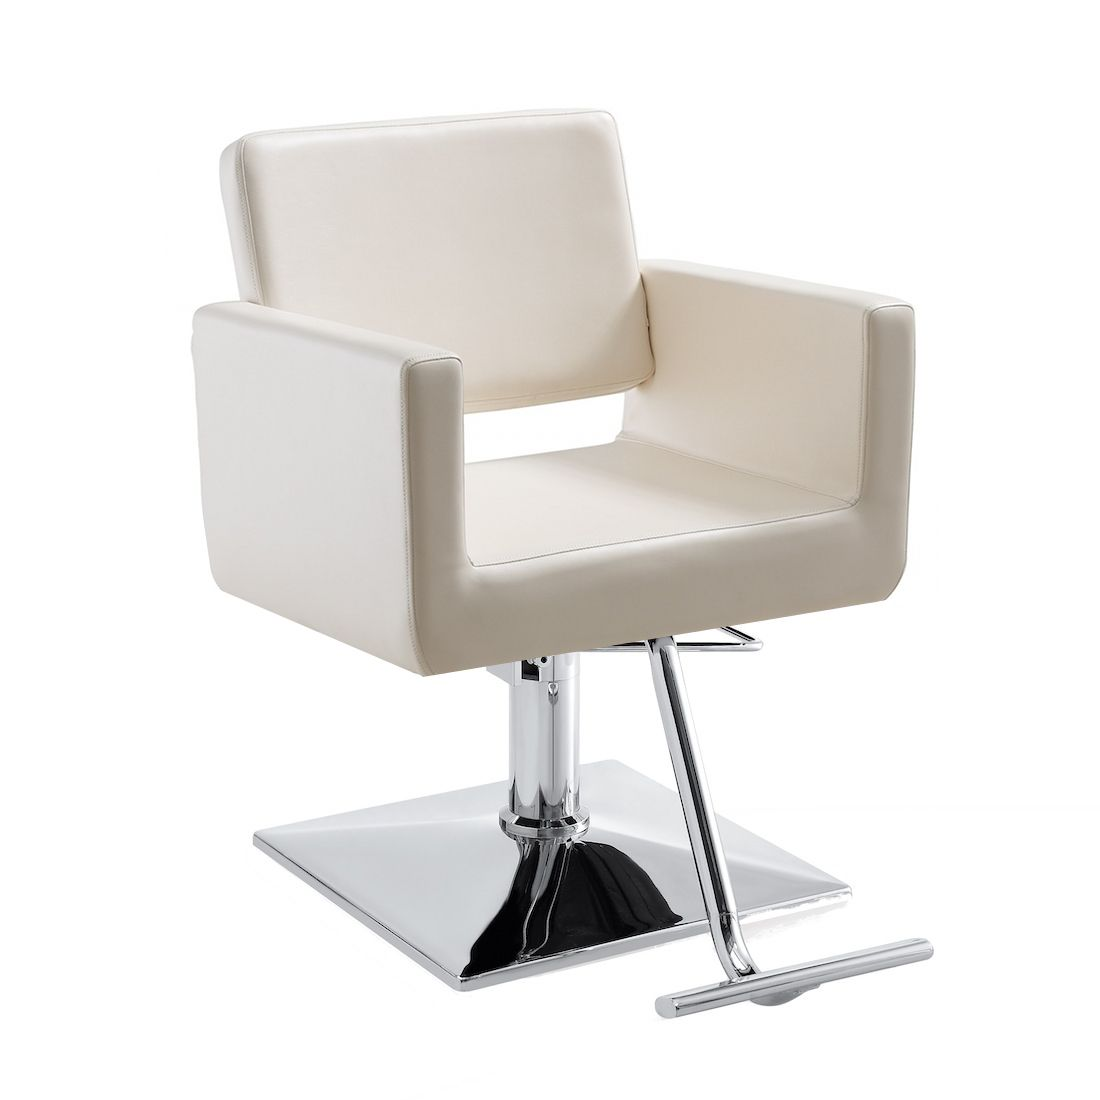 draper white salon chair | salons, styling chairs and modern